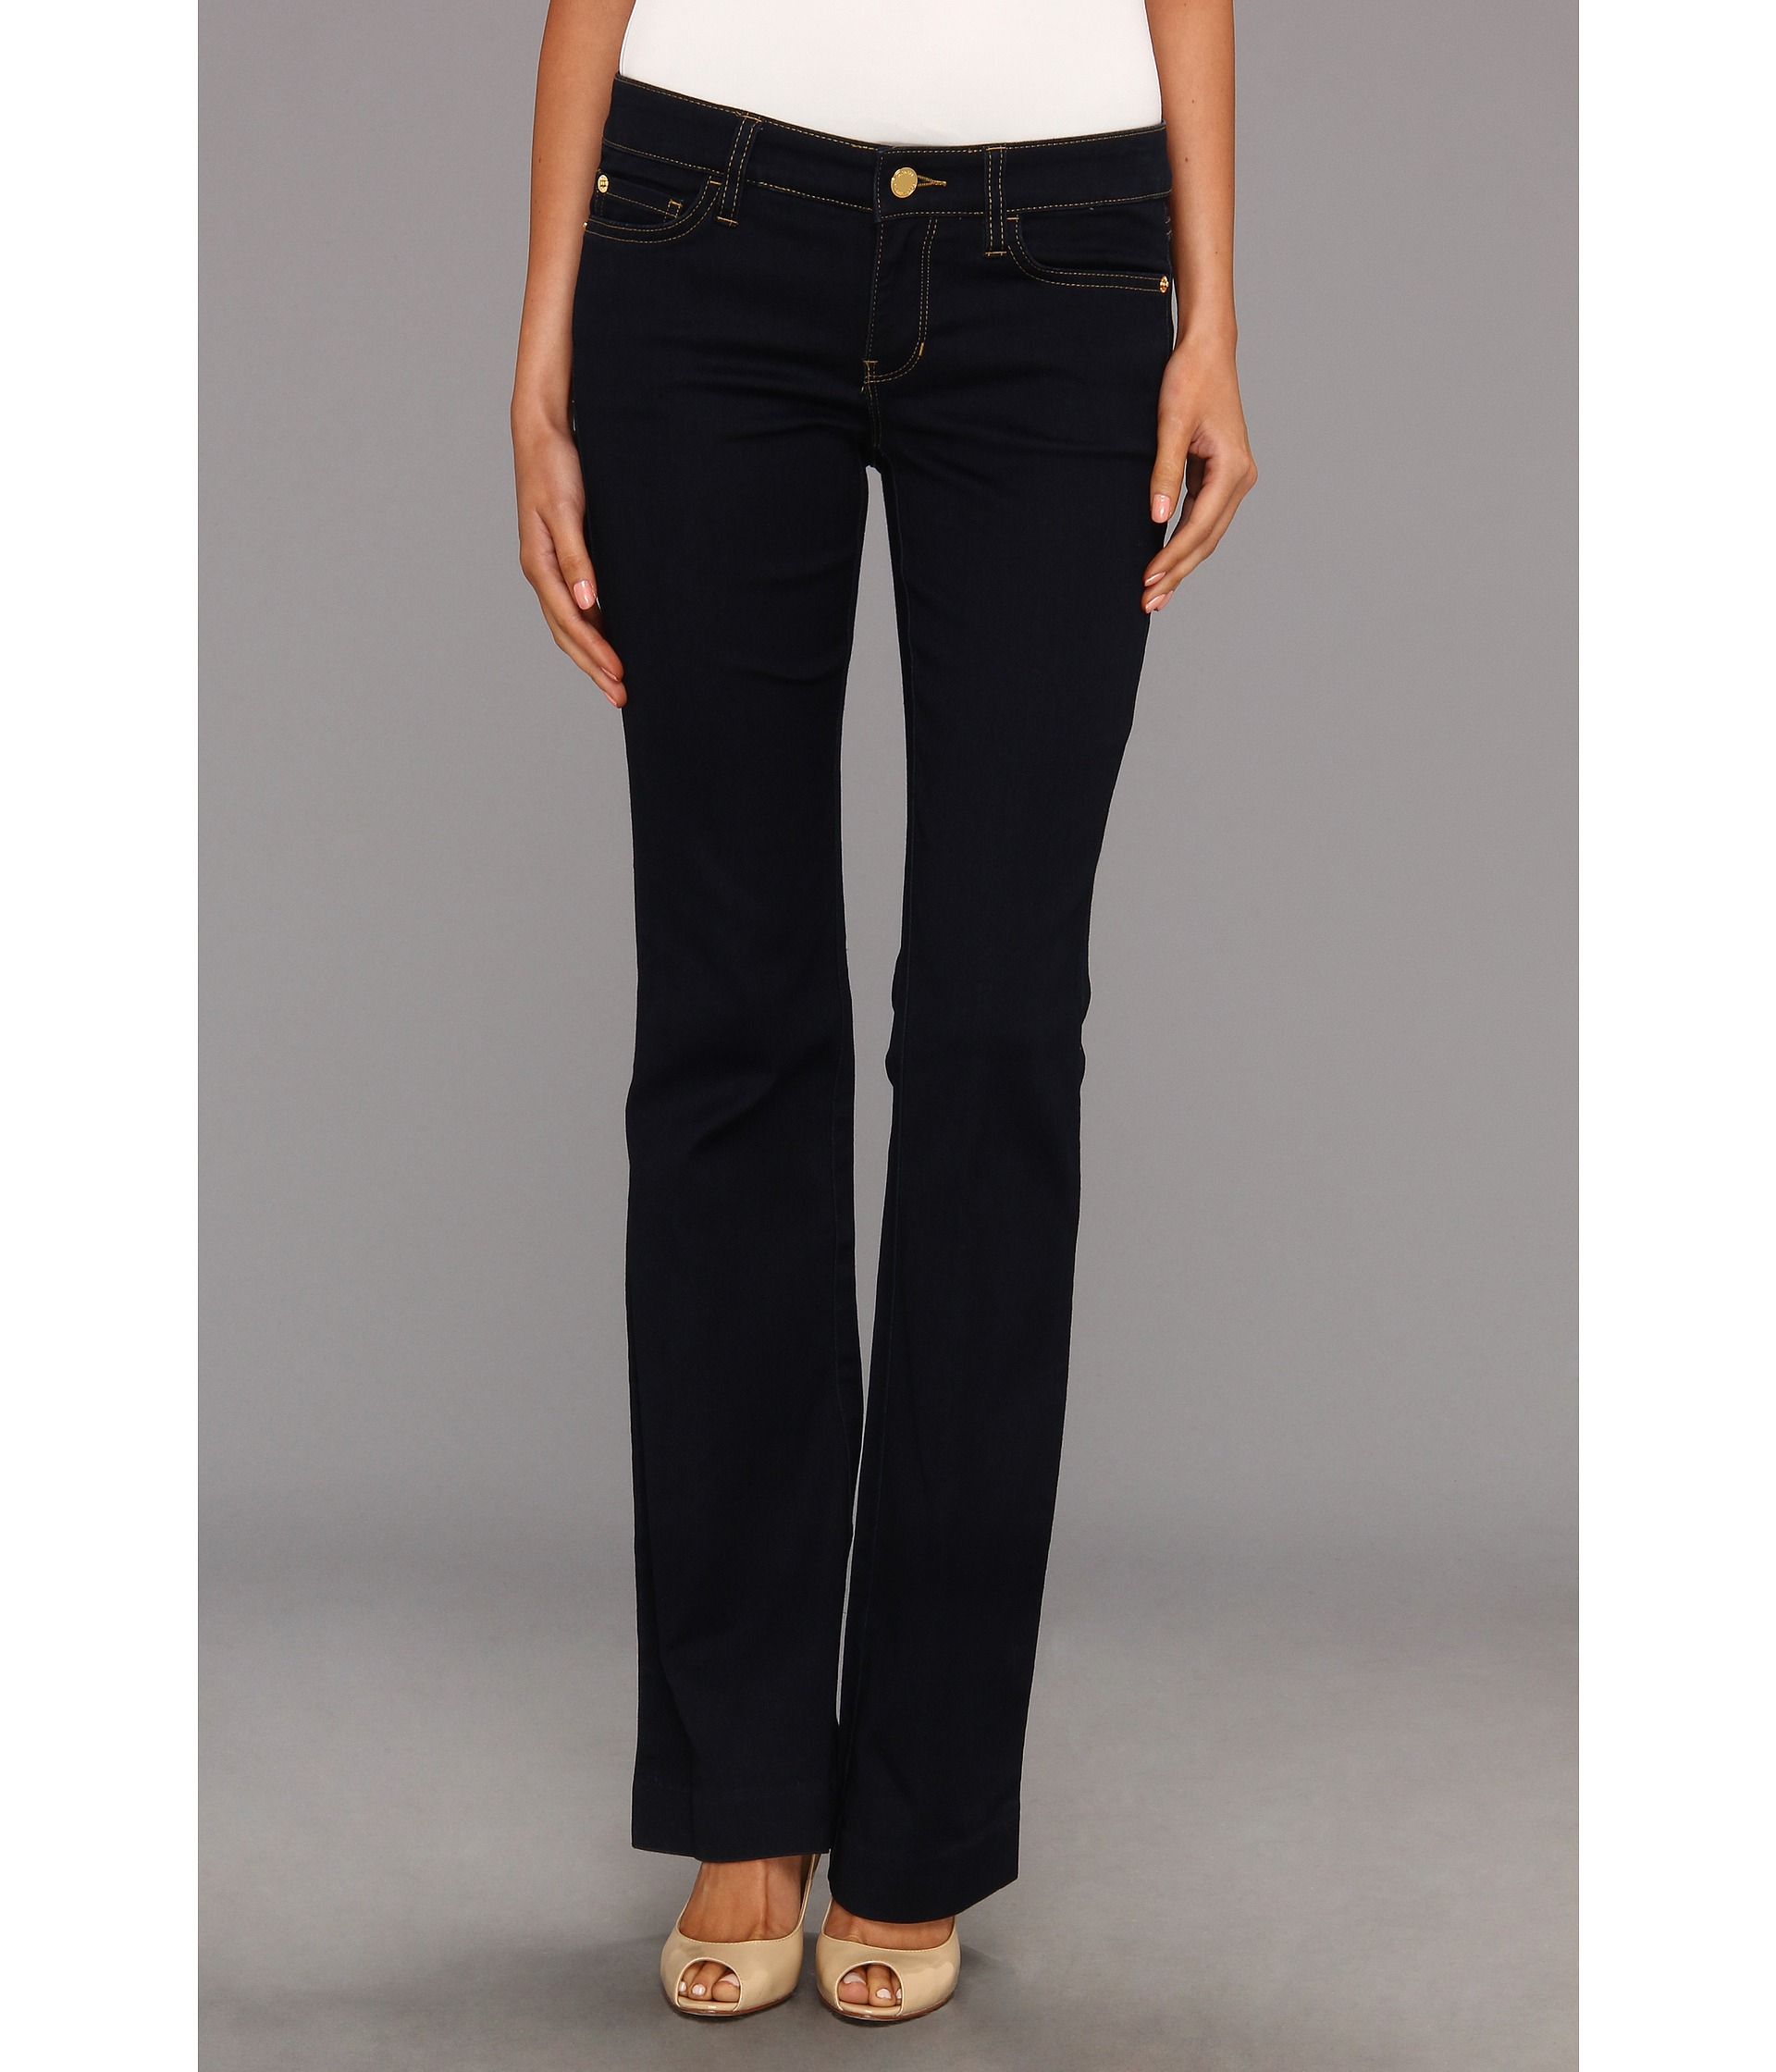 Size 23 Womens Jeans